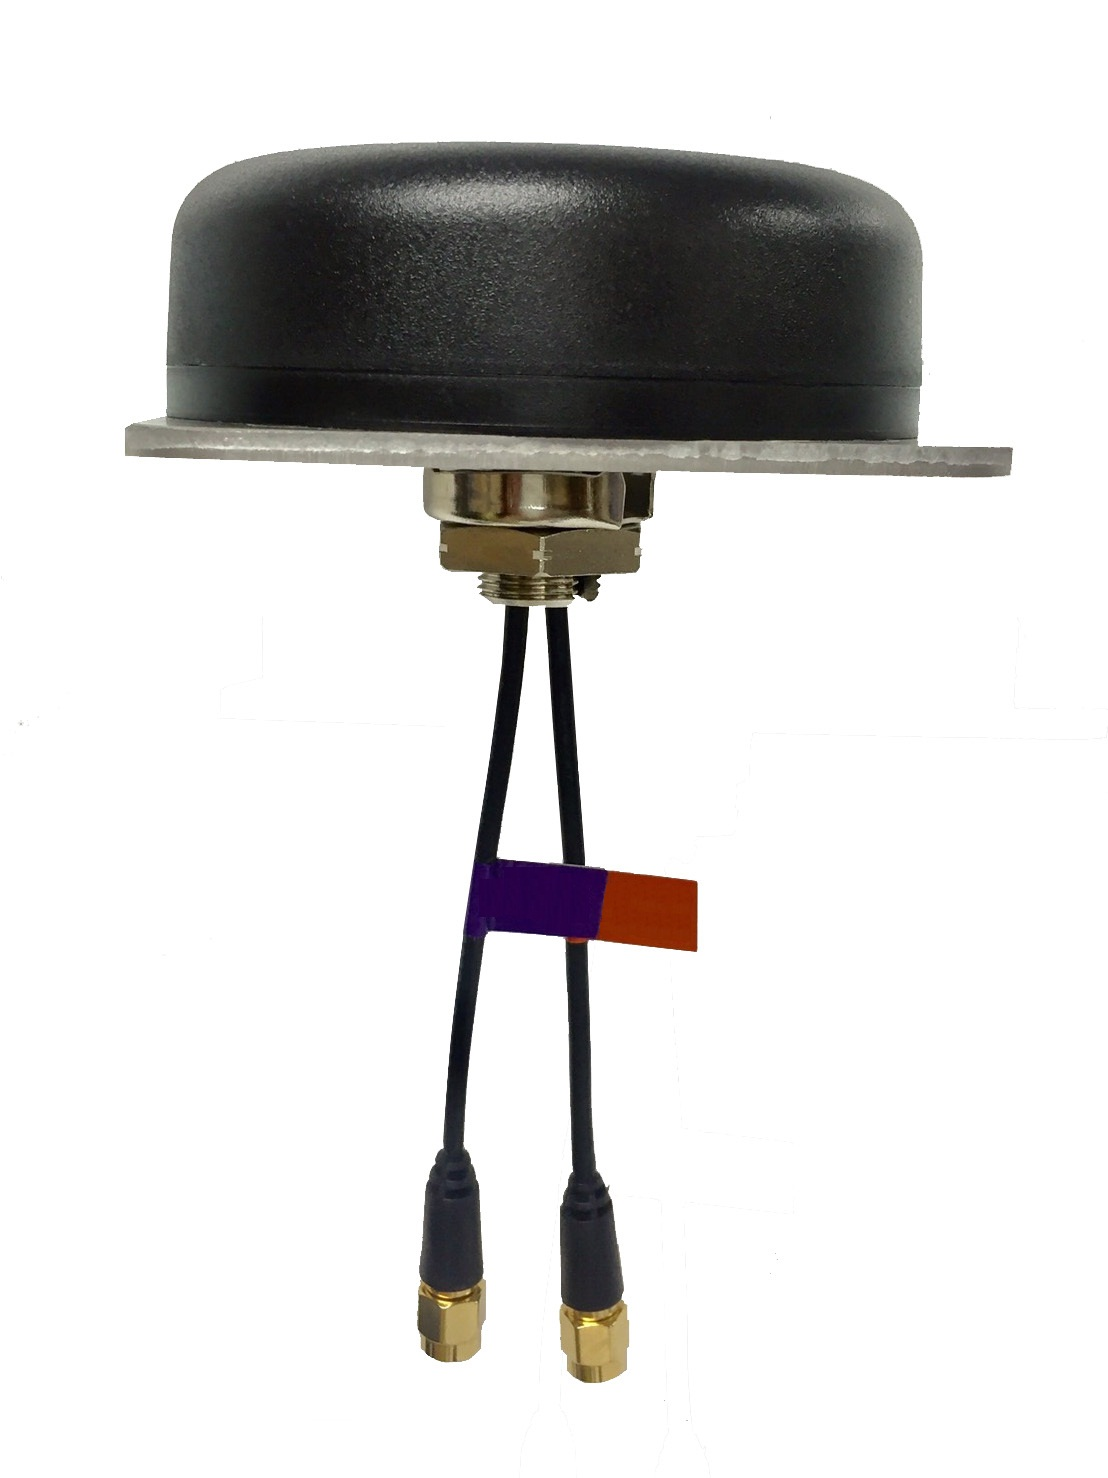 Truck / Trailer / Heavy Duty Combined Antenna for Body Parts made by Chinmore Industry Co., LTD. 竣茂工業有限公司 - MatchSupplier.com